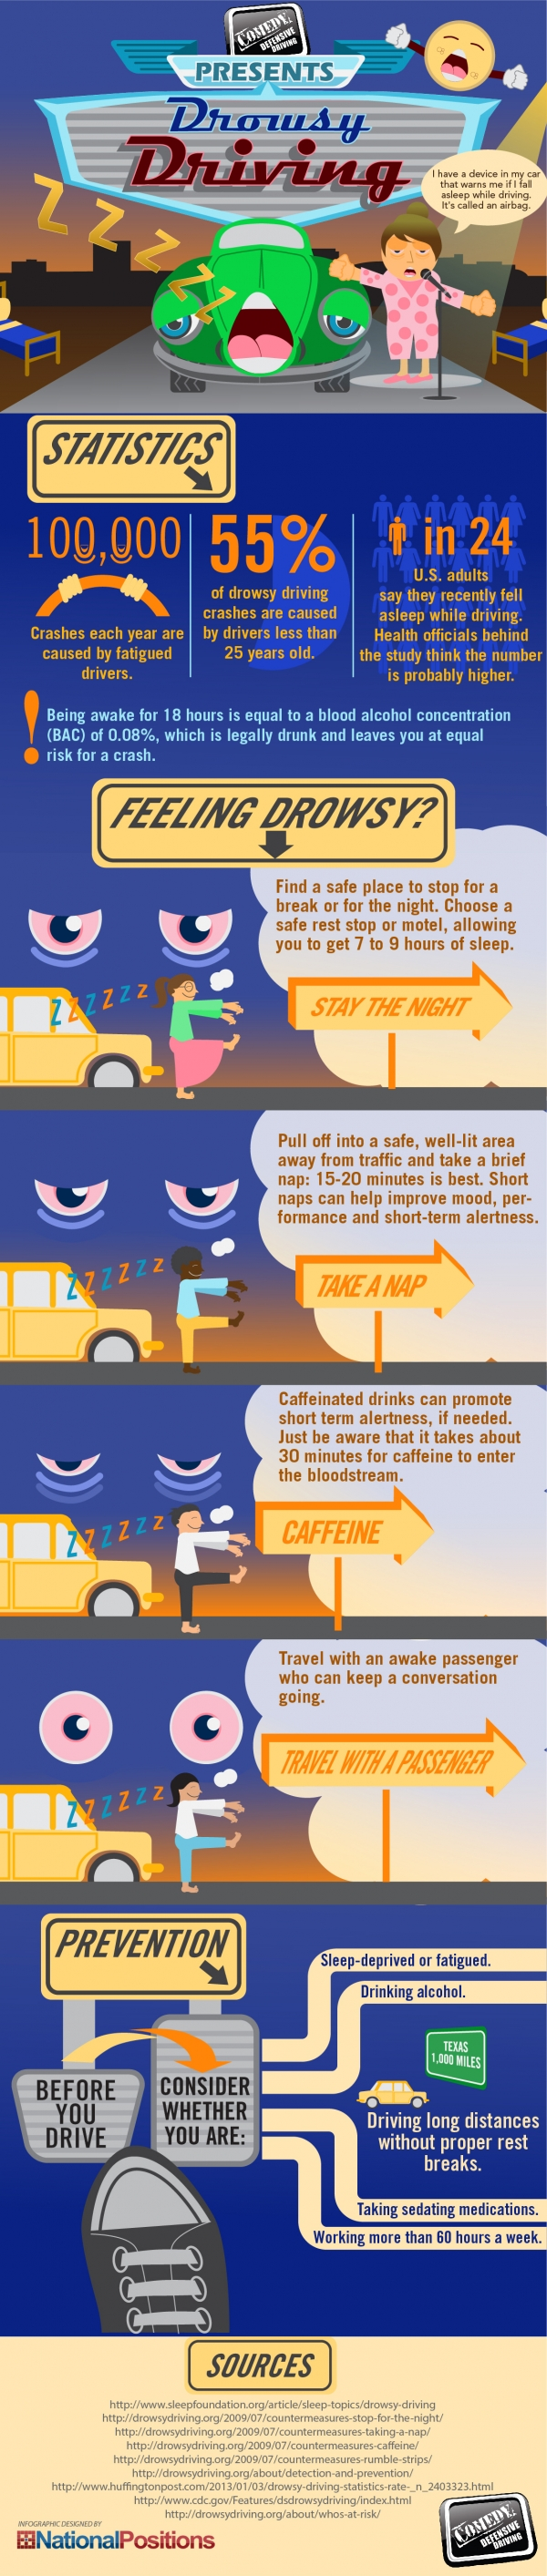 driving drowsing infographic - don't sleep and drive!